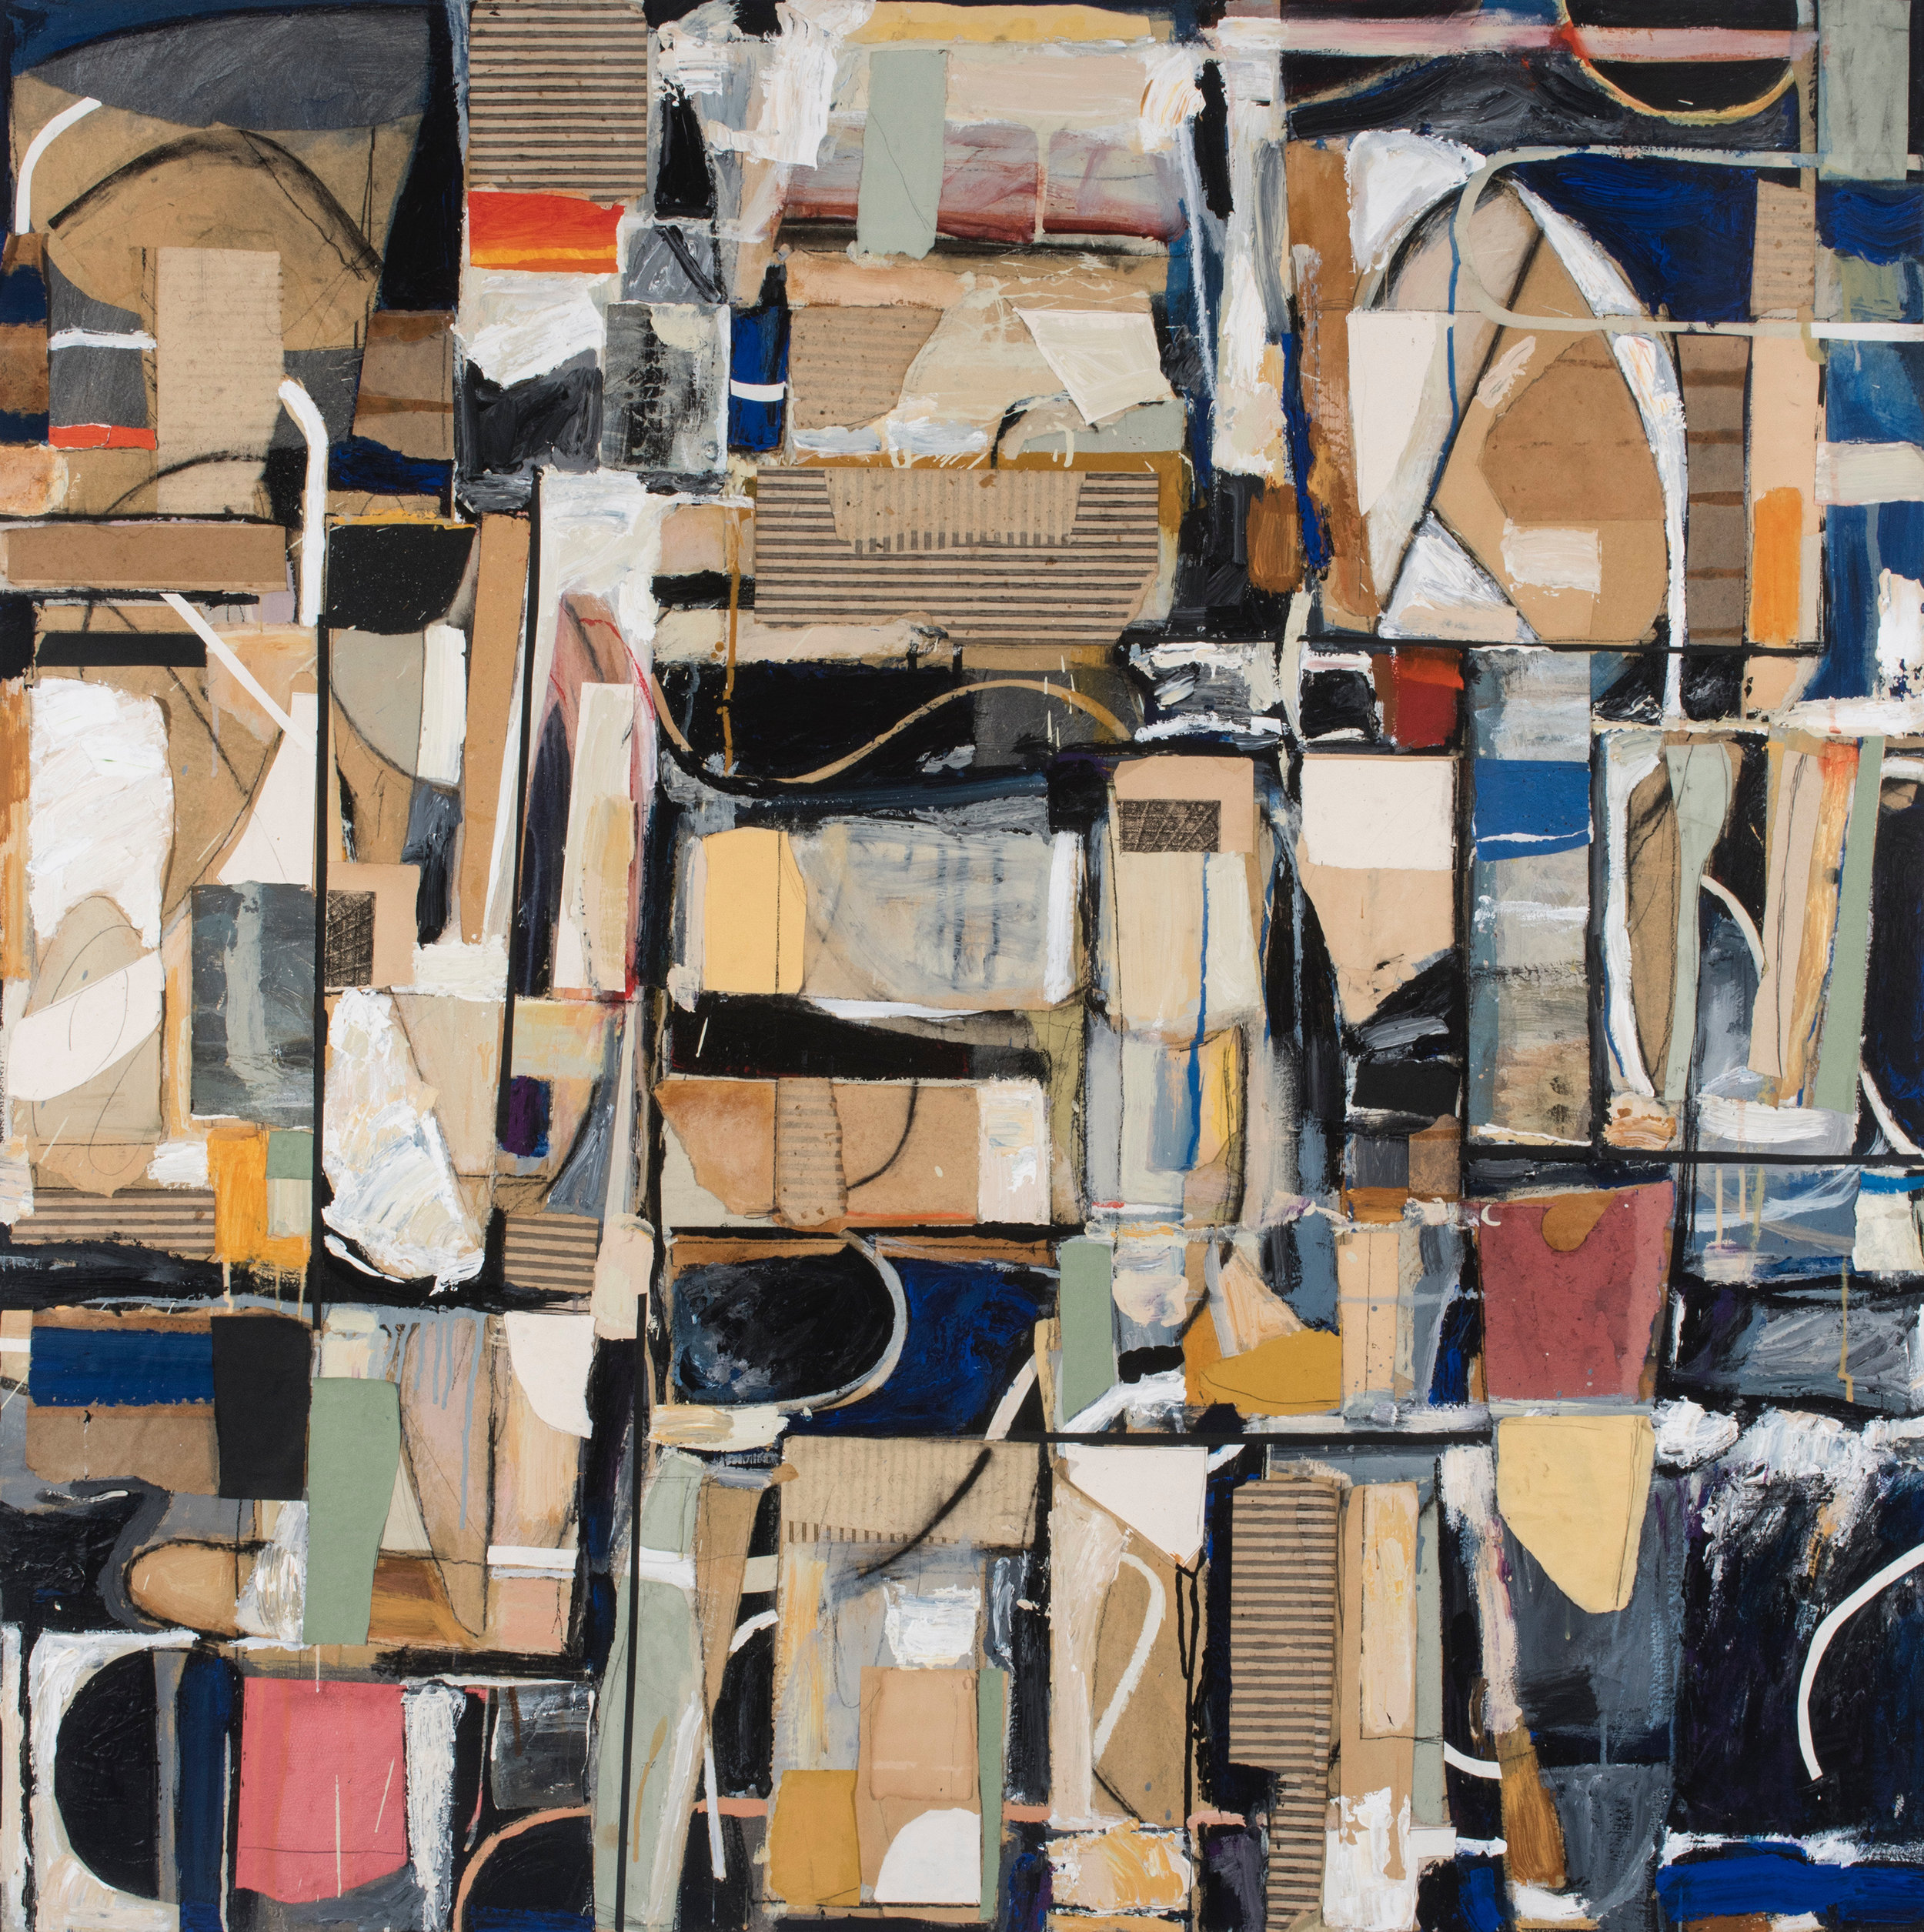 """New York 3am"", 1998, acrylic, charcoal, graphite and collage on canvas, 48"" x 48"""